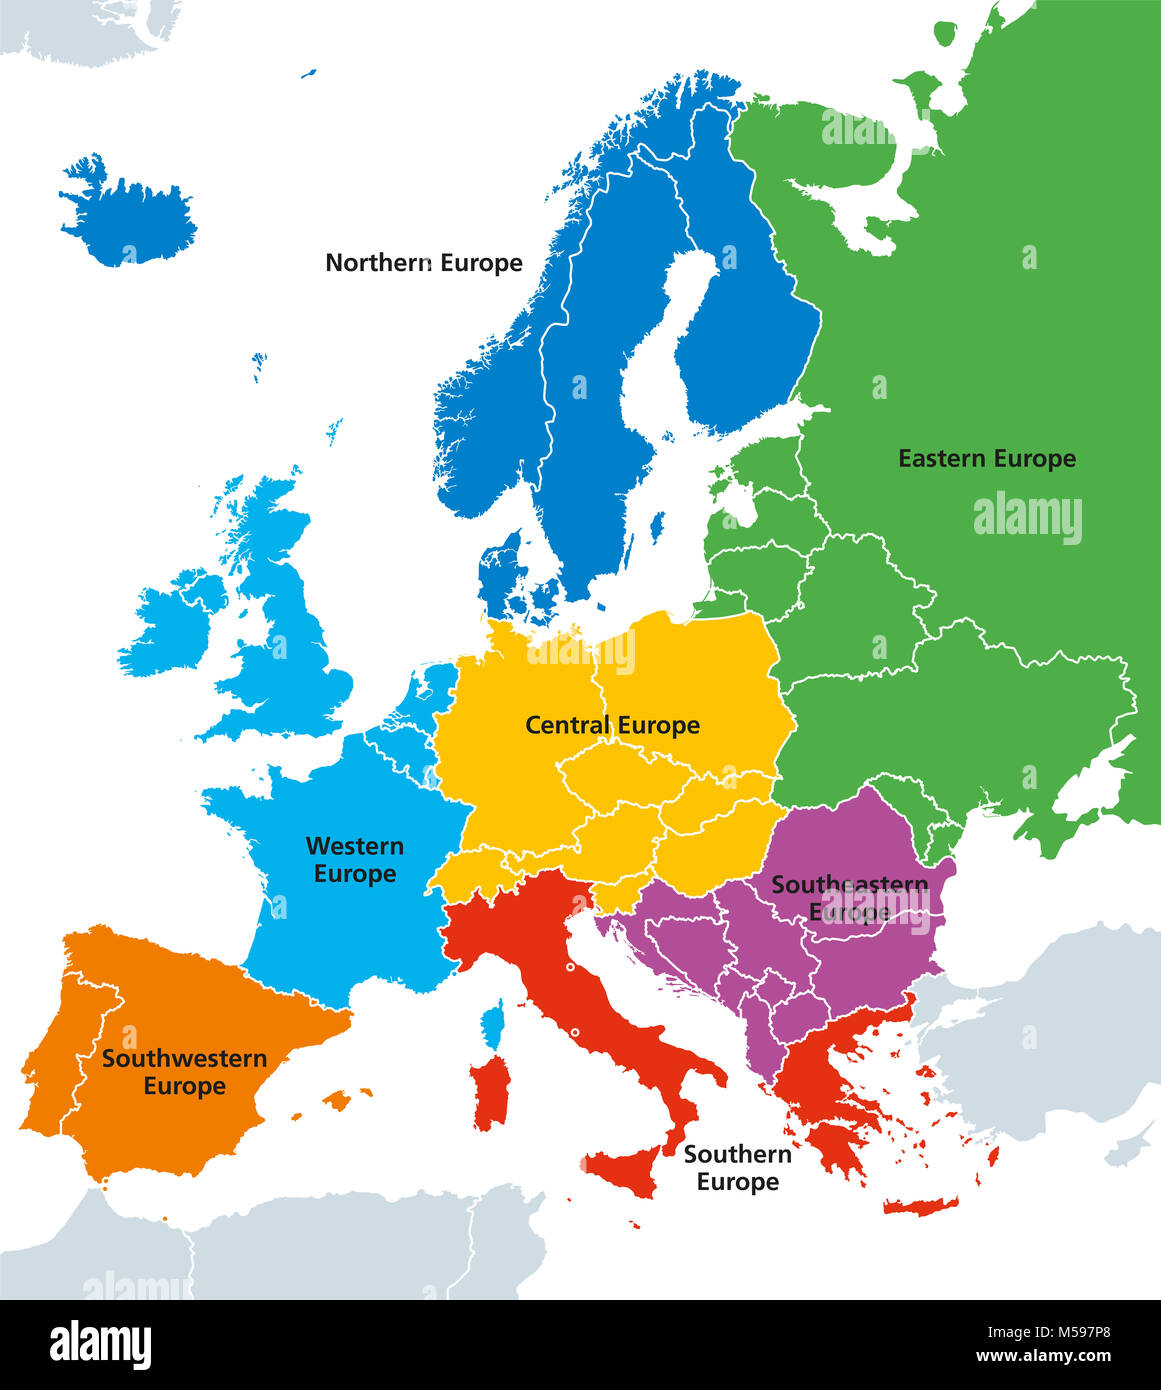 political map of southeastern europe Europe regions, political map, with single countries. Northern